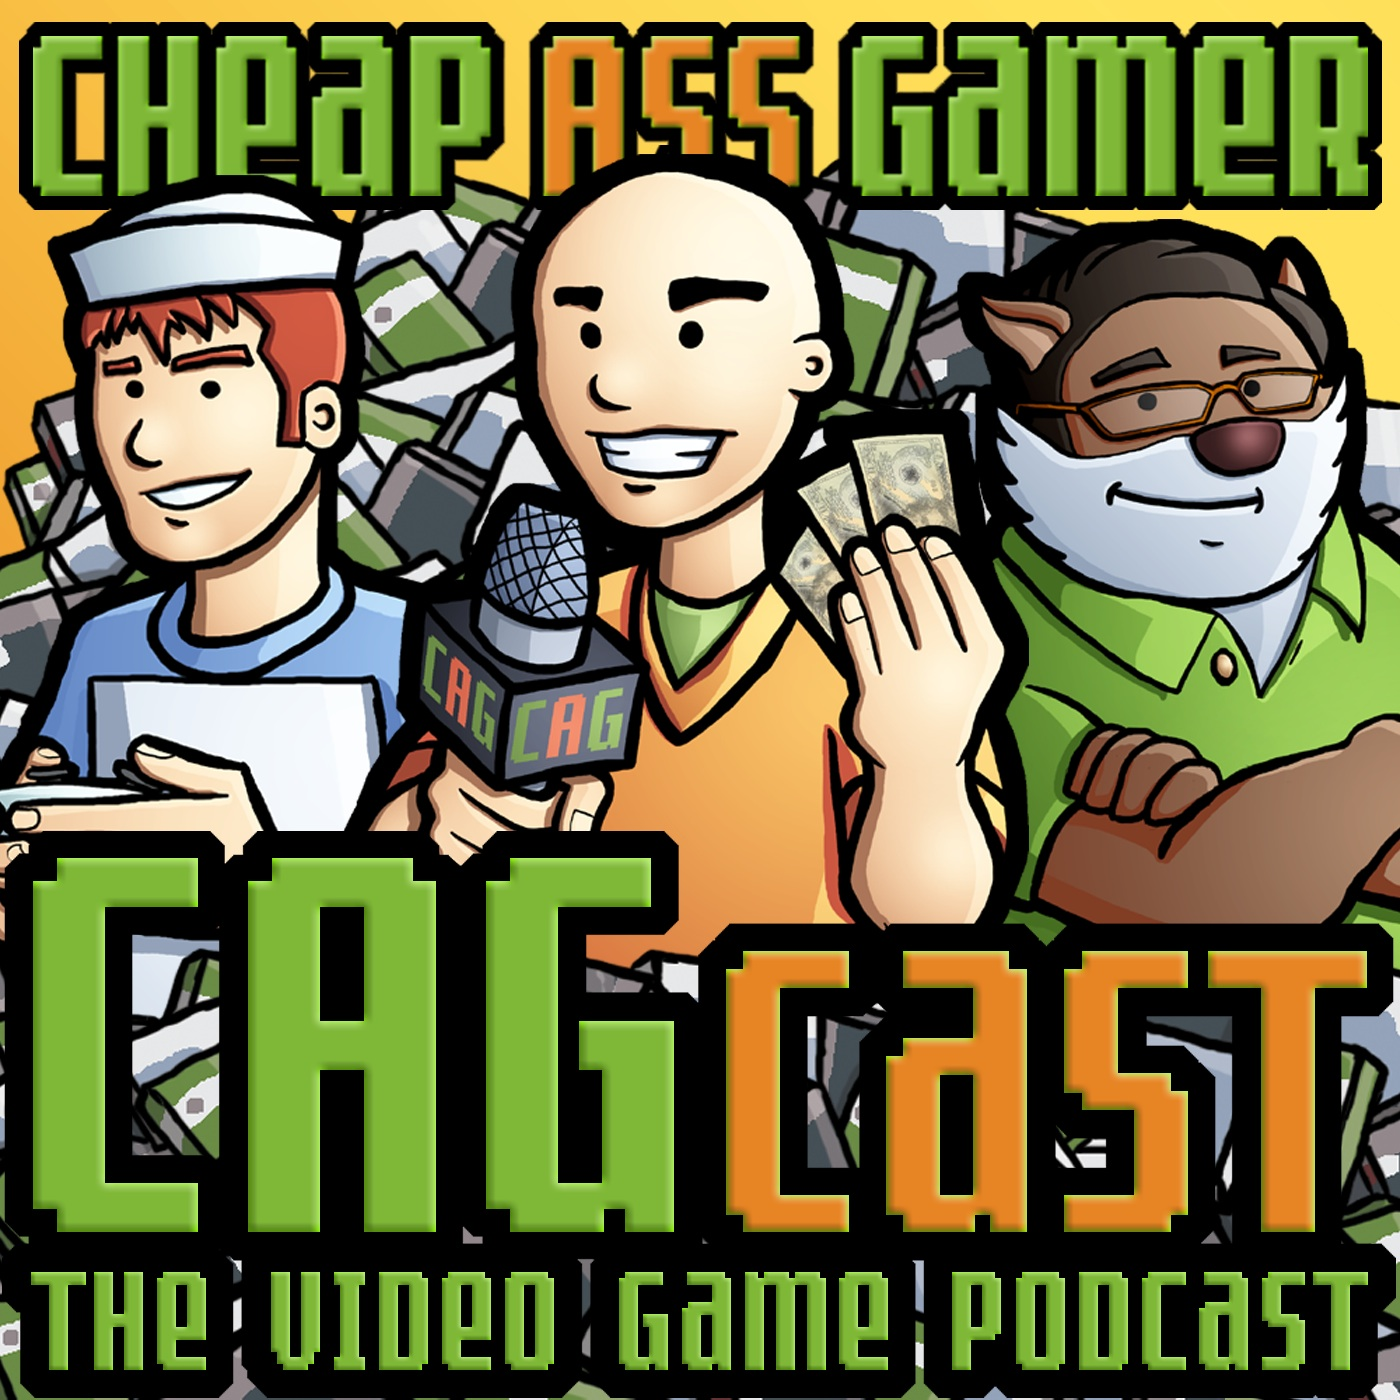 CAGcast #695: Why Are My Feet Wet? show art